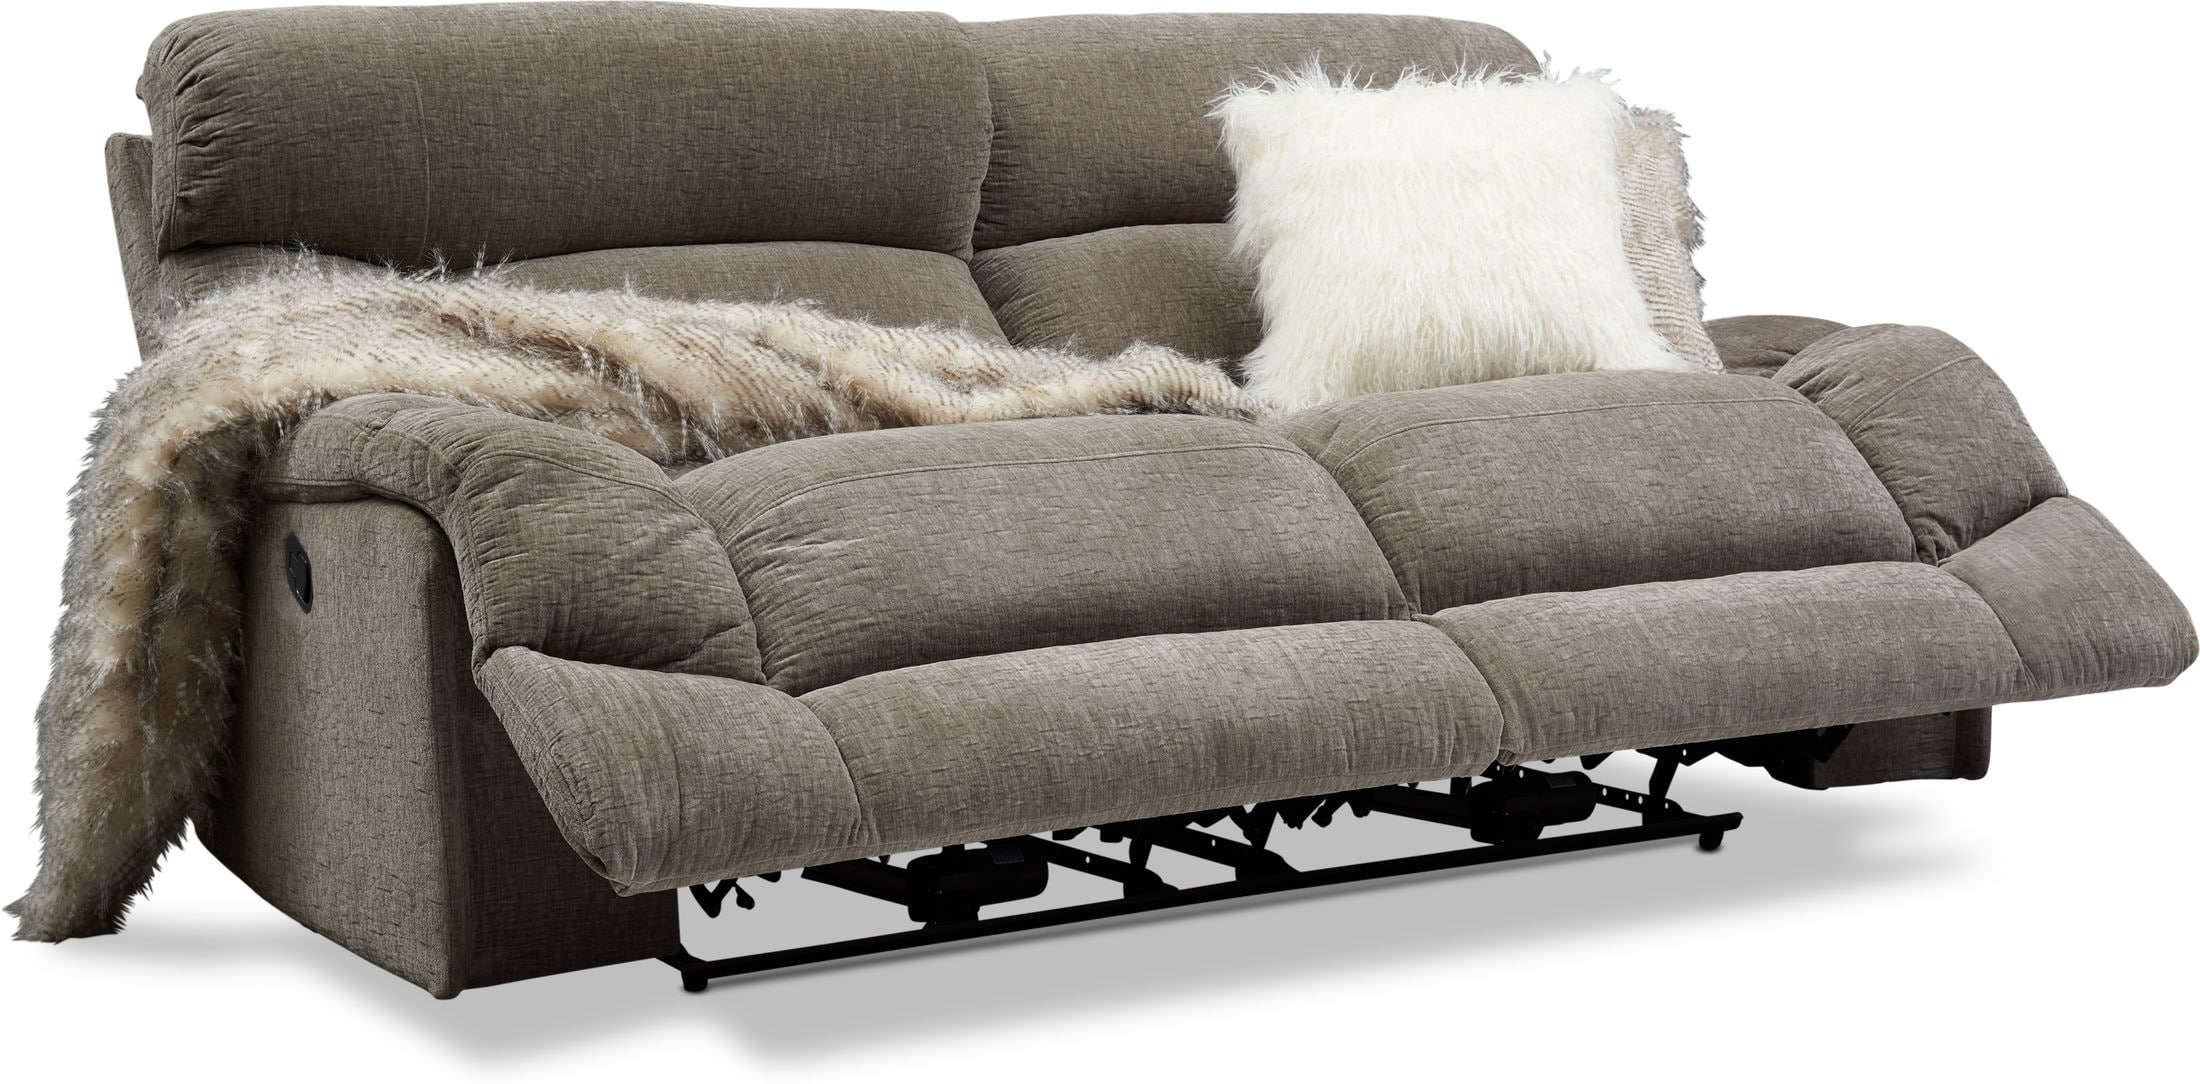 Whether you work in a retail shop or a restaurant, a doctor's office or a bank, customer service is one of your most important tasks. Wave Manual Reclining Sofa | Value City Furniture